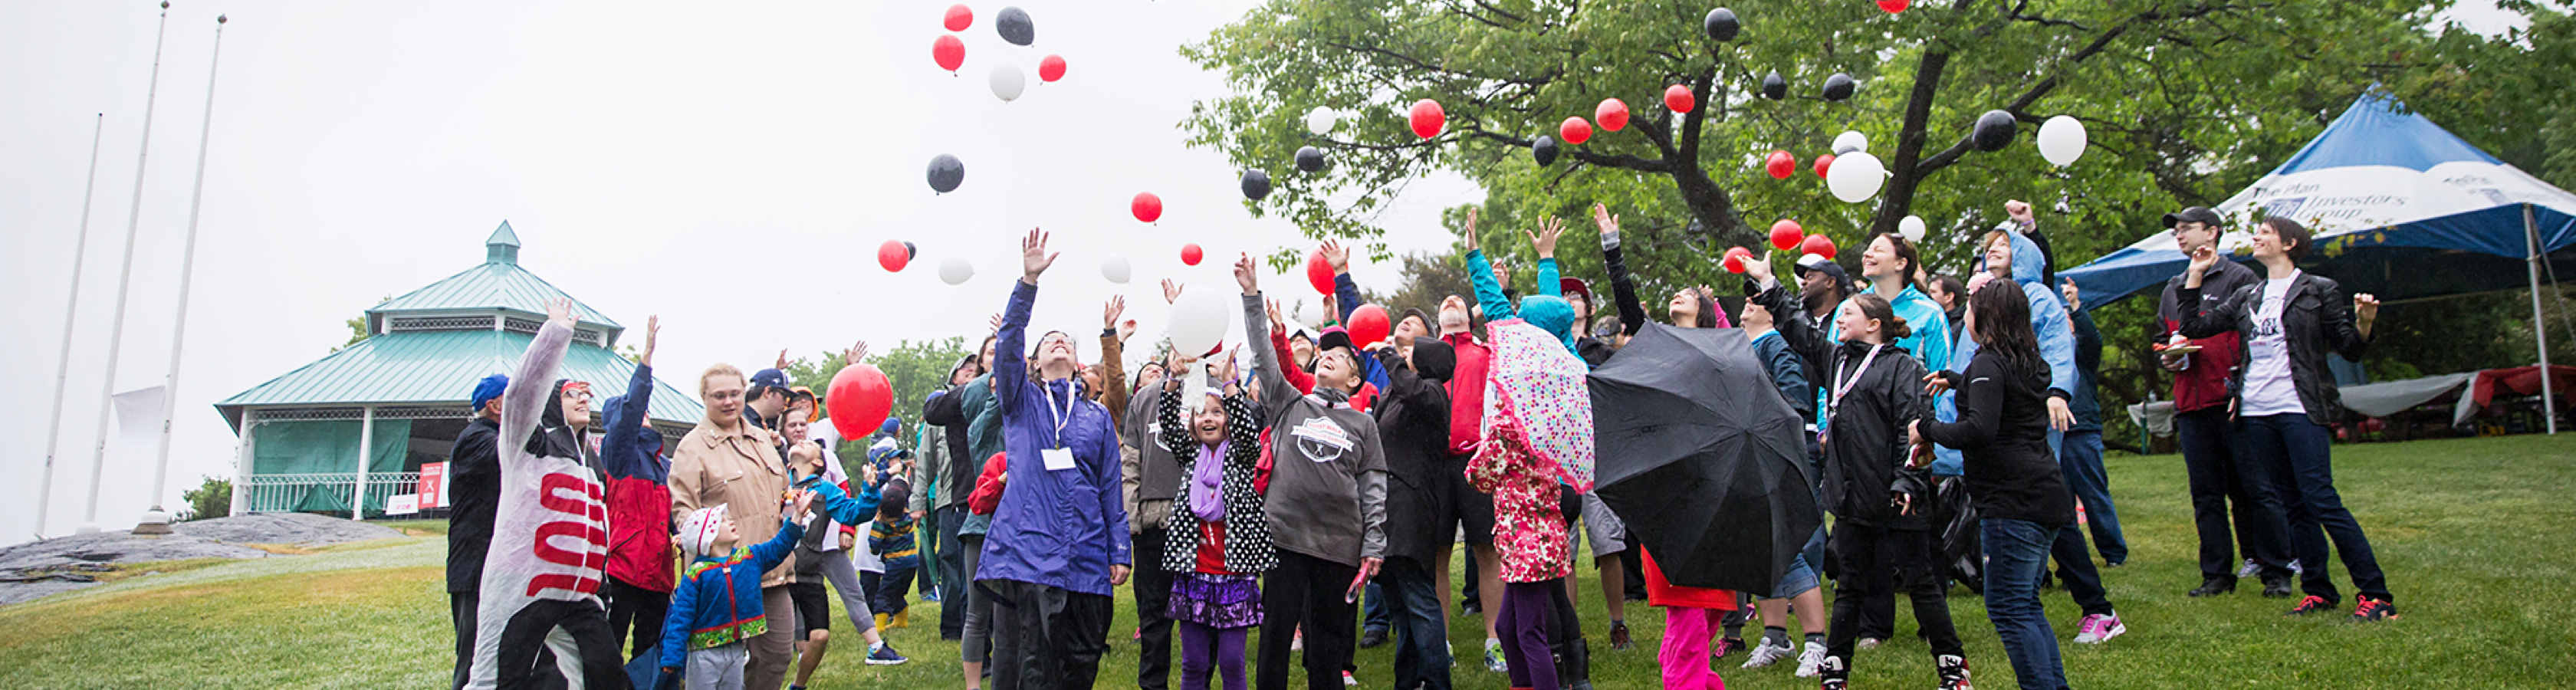 Crohn's and Colitis Canada Gutsy Walk Event Celebration